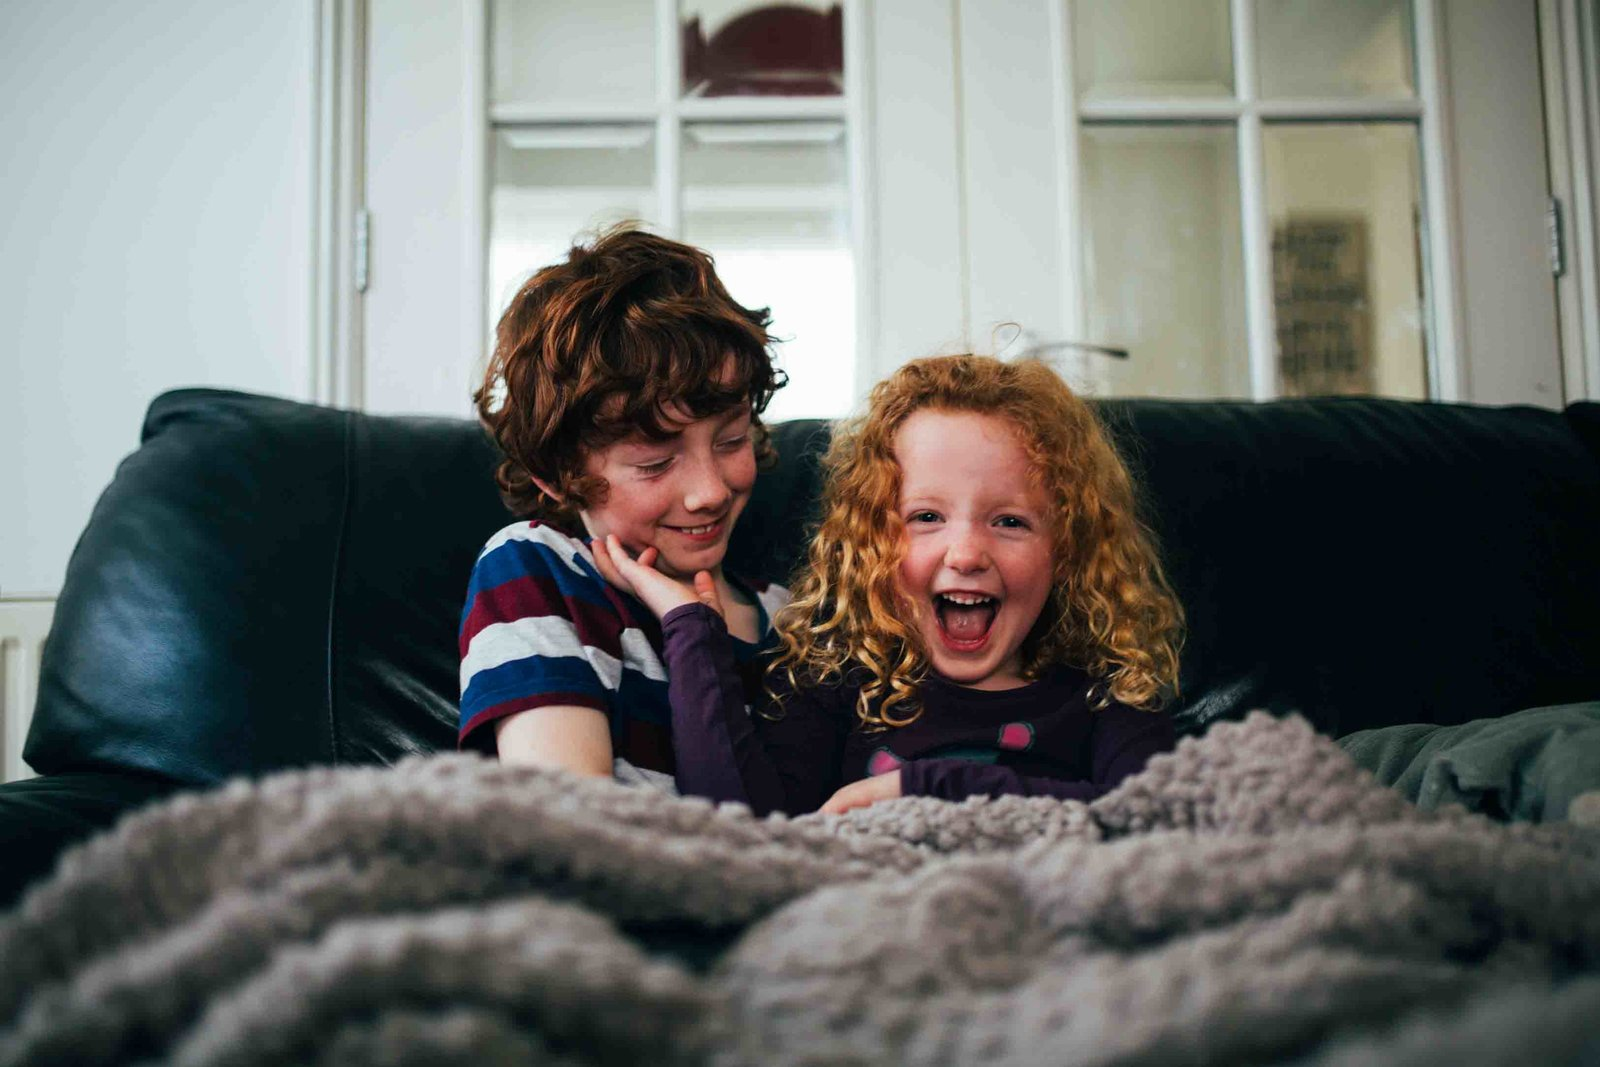 Photograph of ginger brother and sister tickling each other on the sofa at home in Ipswich, Suffolk